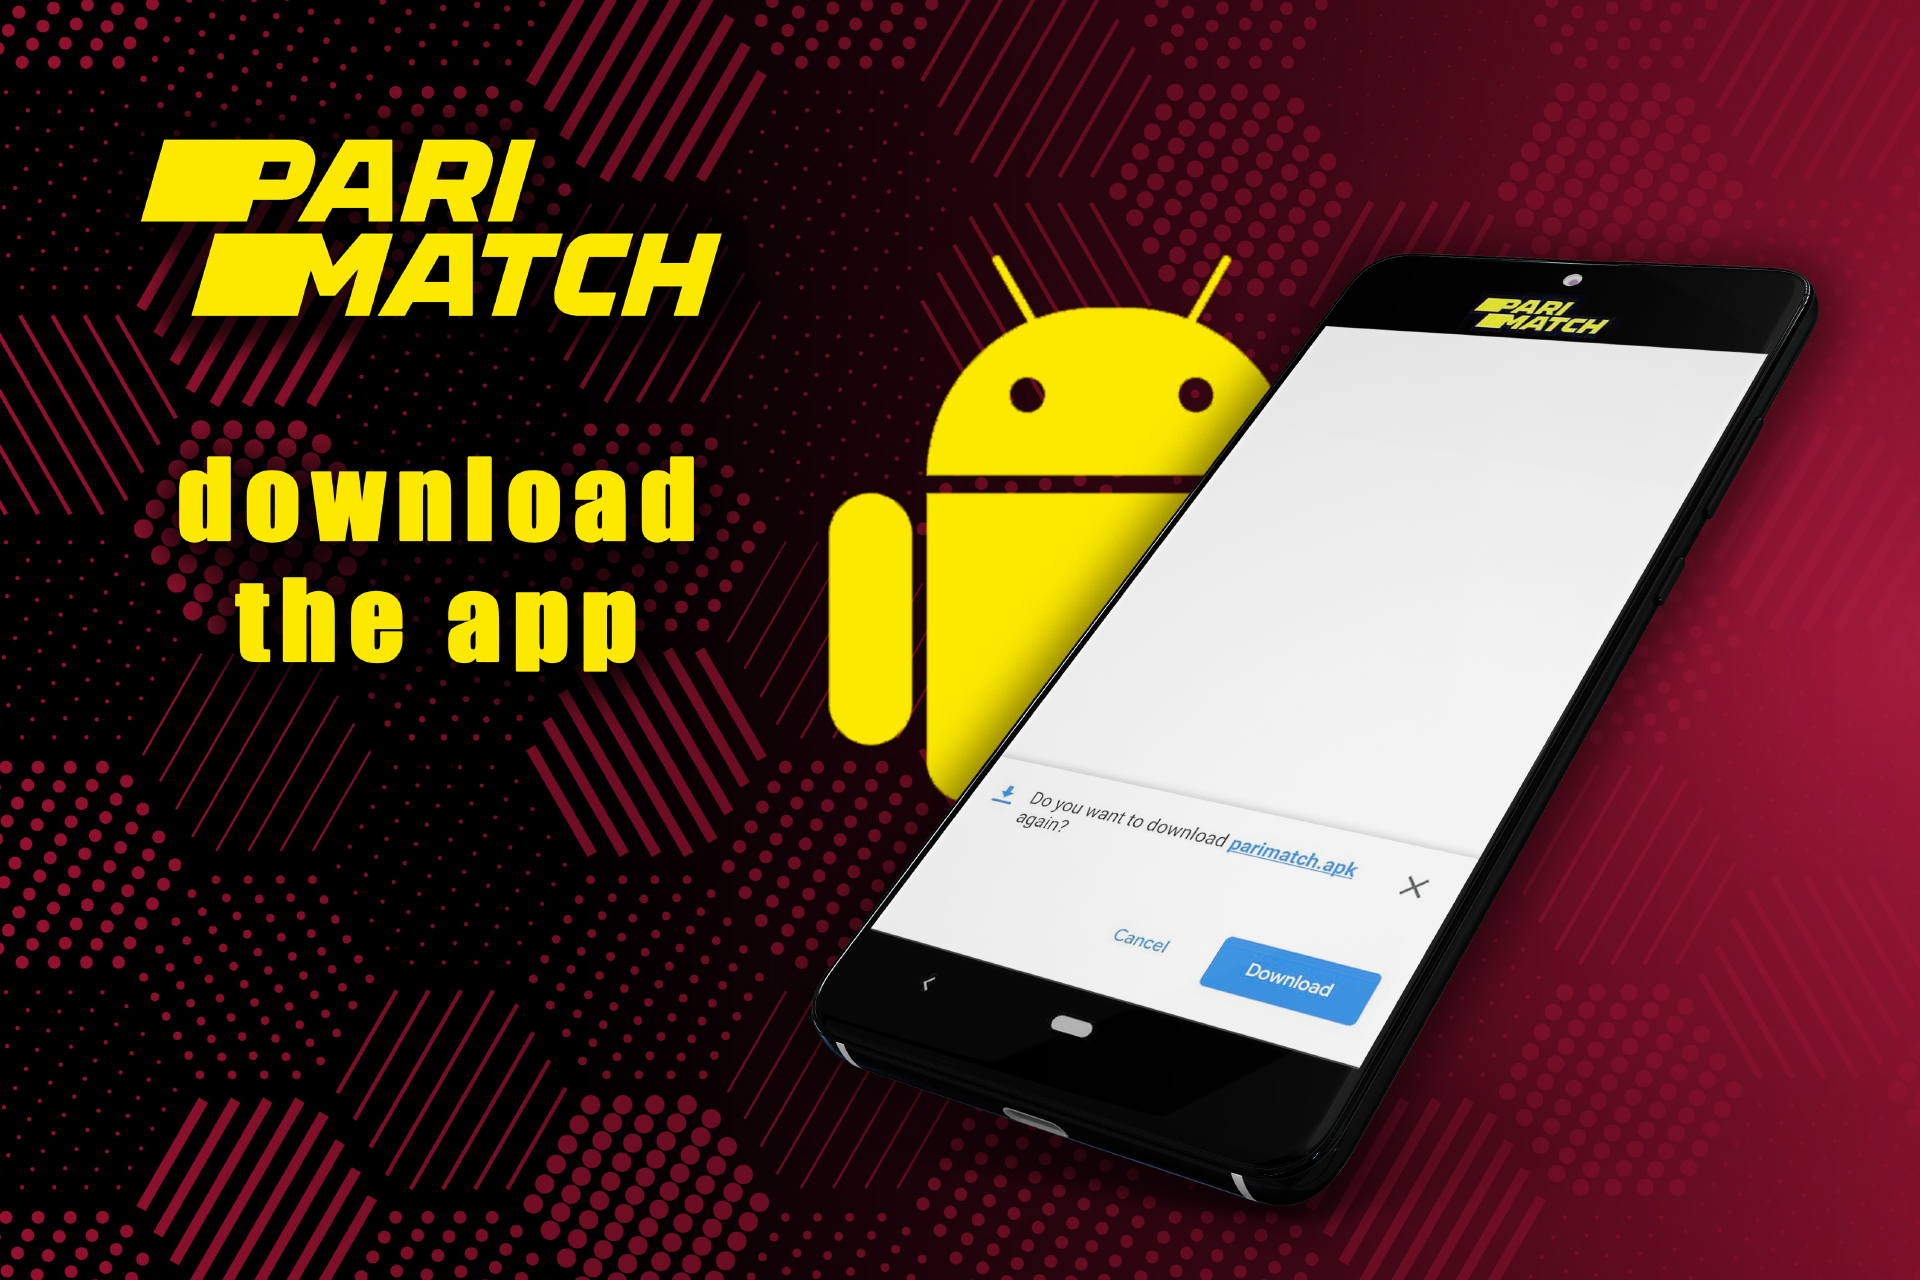 Download the *.apk file to your smartphone.